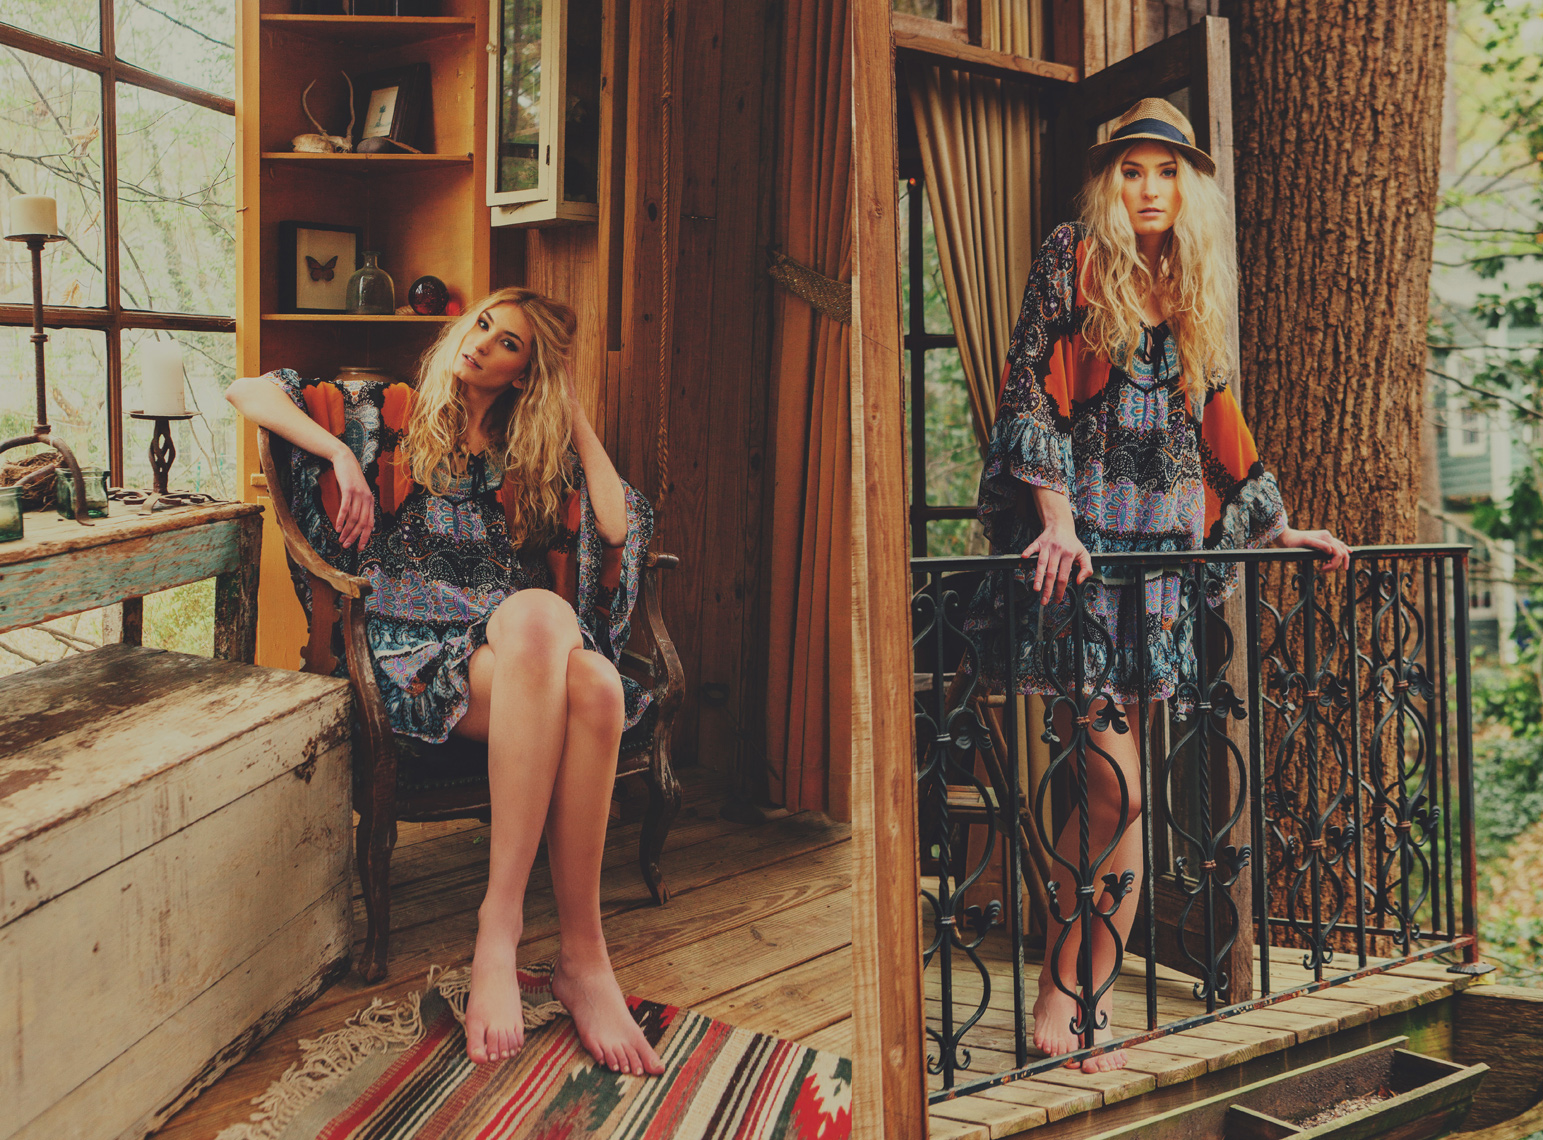 Hannah Johnson: Factor Women  Styled by: Hannah Johnson  Hannah is a natural model and a natural poser. The colors and tones of her dress really melded well with the wood and the textures of this treehouse living room.